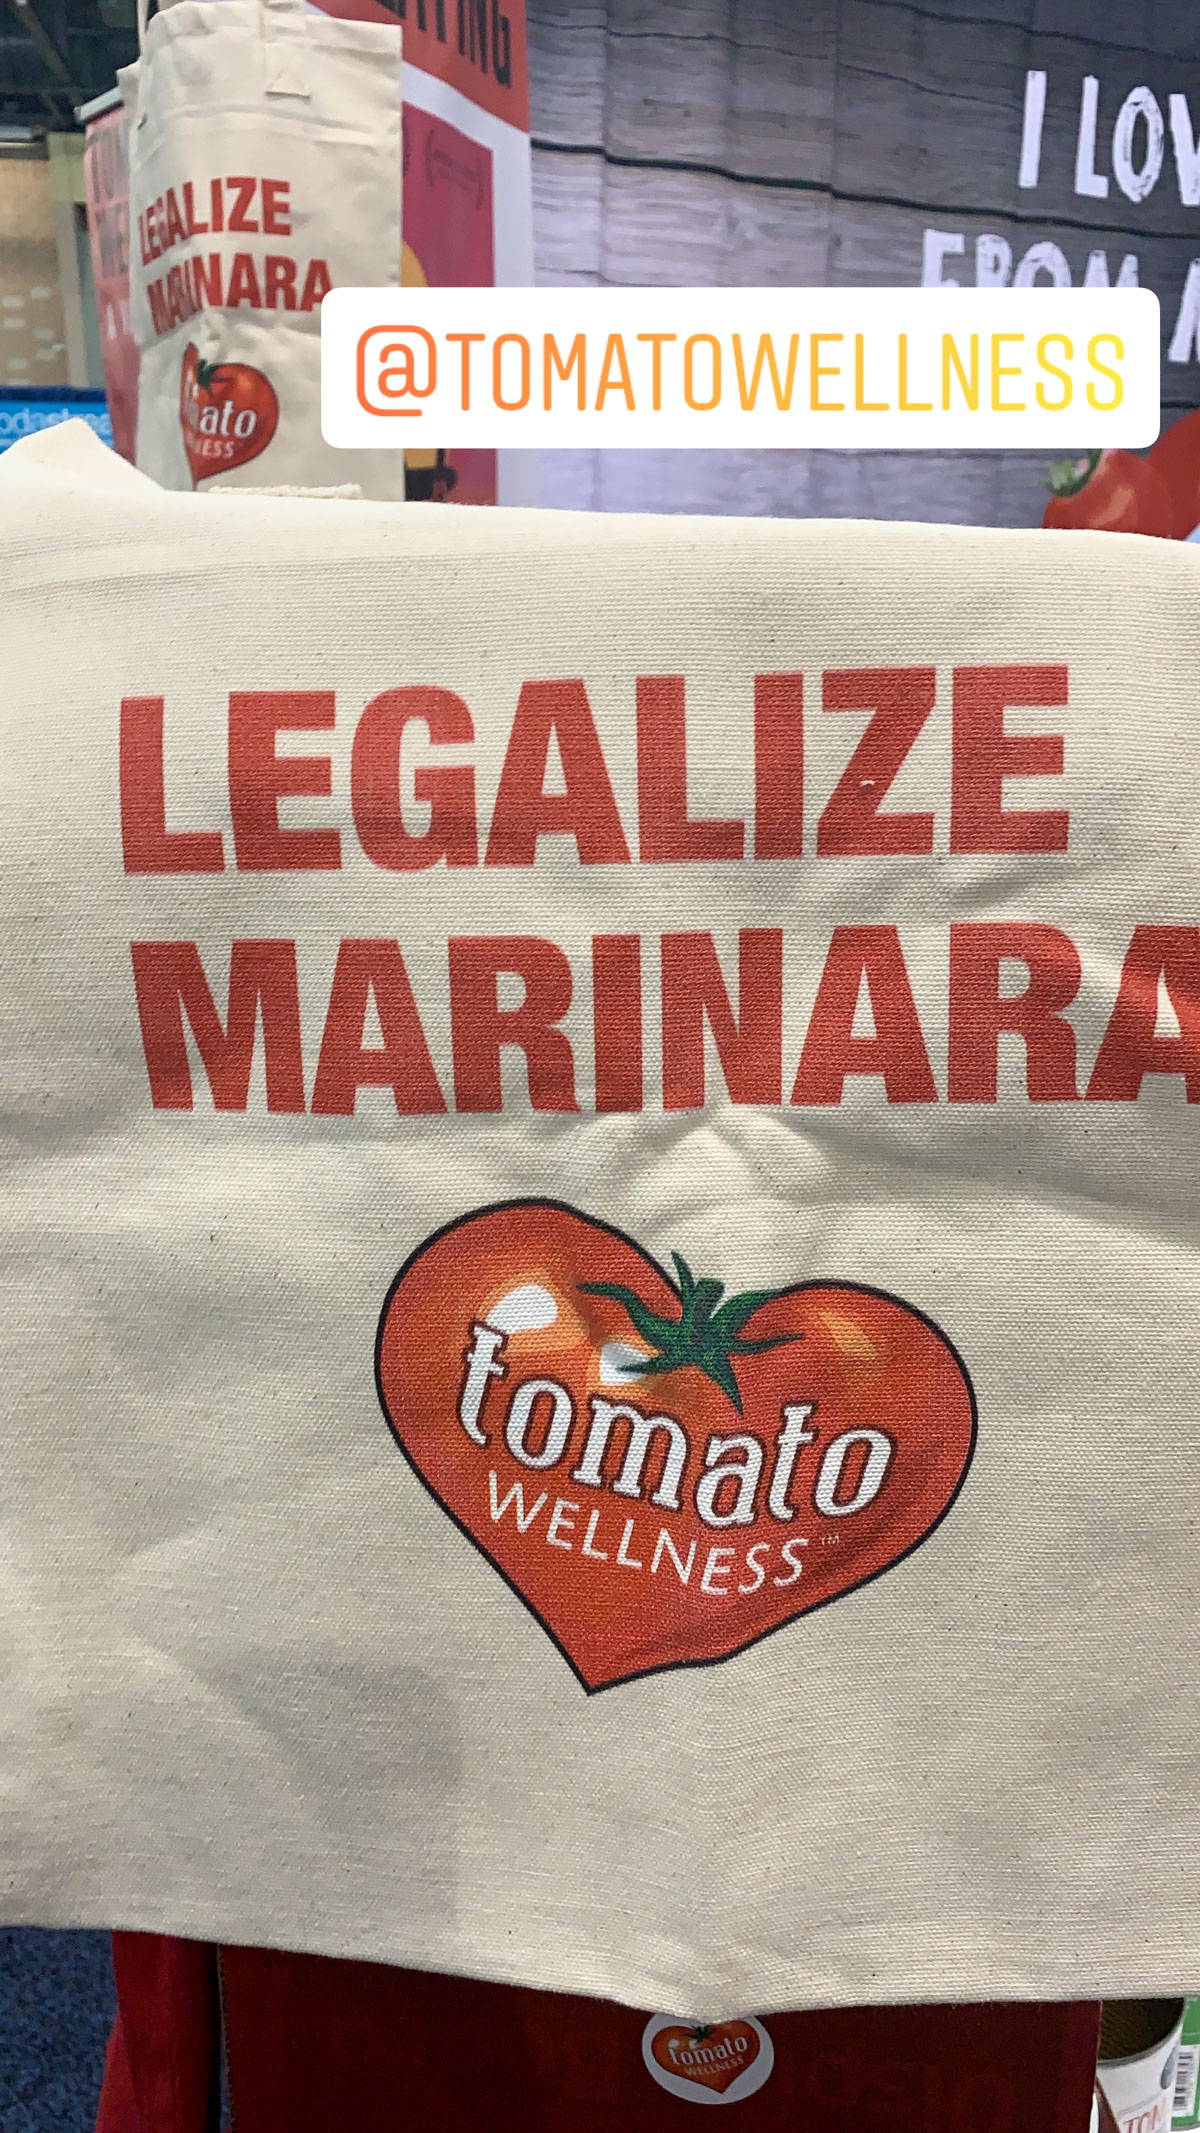 FNCE 2019 - legalize marinara - tomato wellness